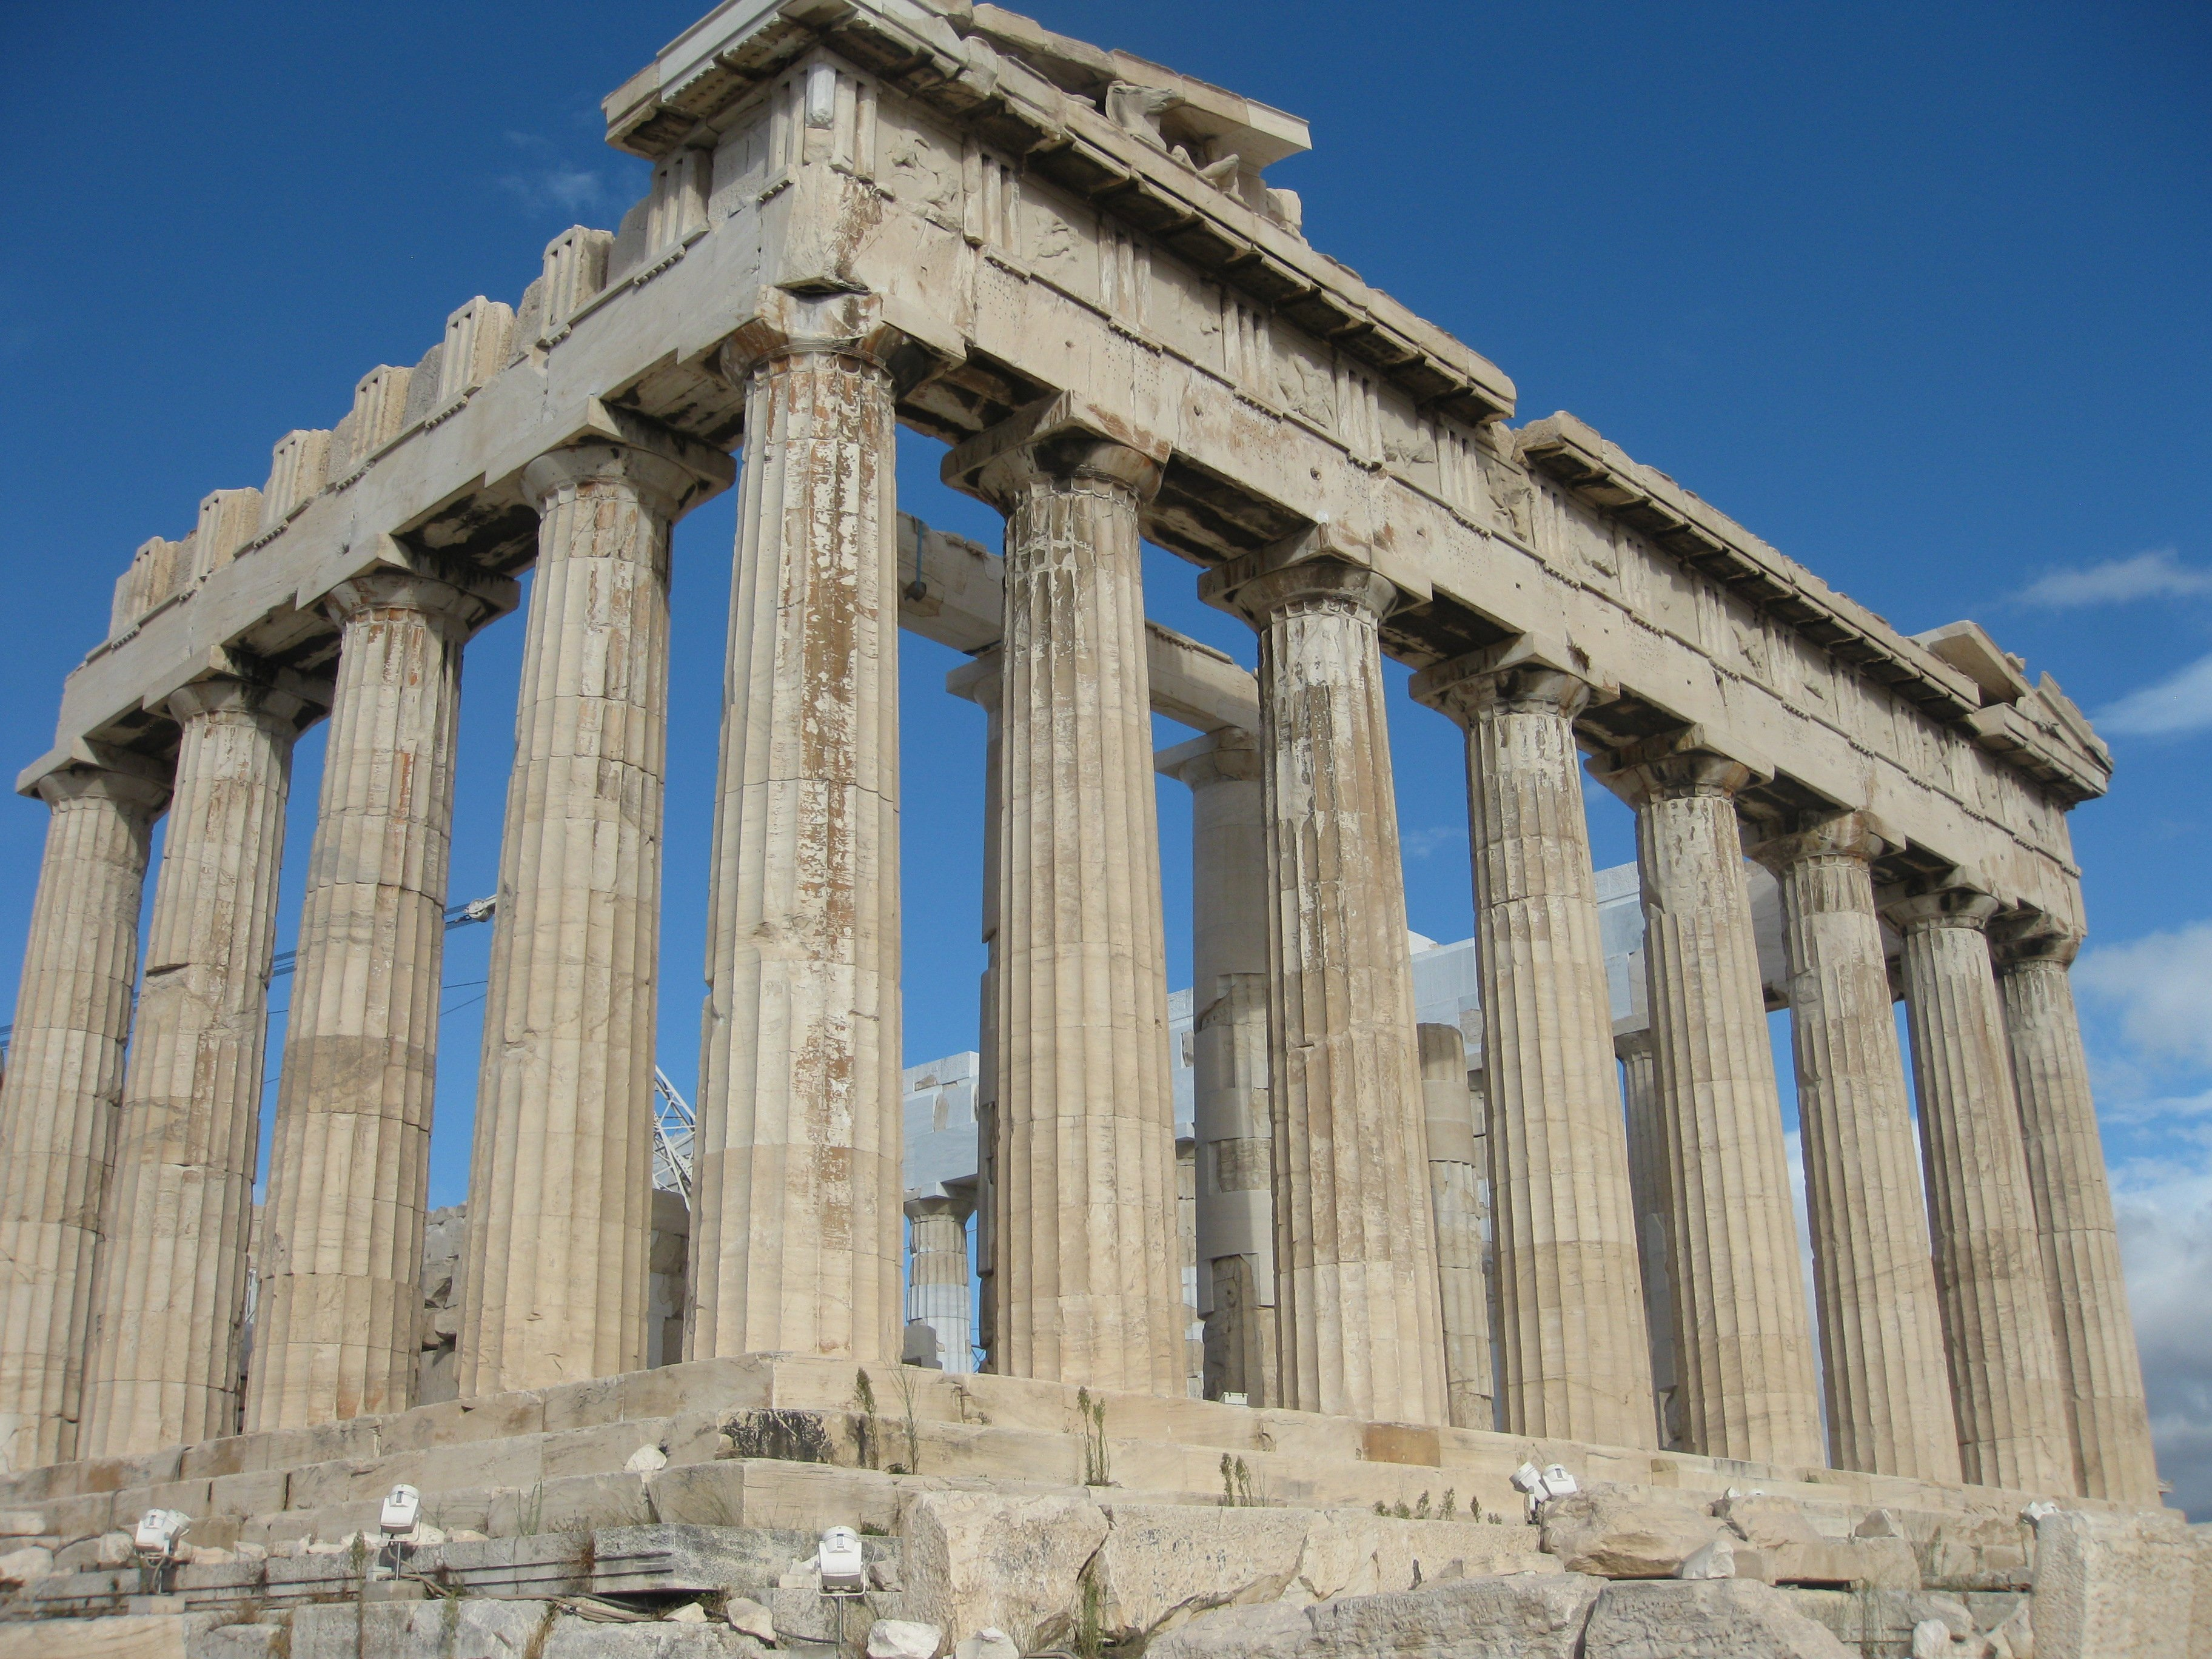 acropolis essay Essay about the acropolis 1847 words   8 pages thesis statement the advanced styles and designs of the acropolis show the genius behind their beginnings which make the acropolis one of the most iconic complexes in the ancient world.